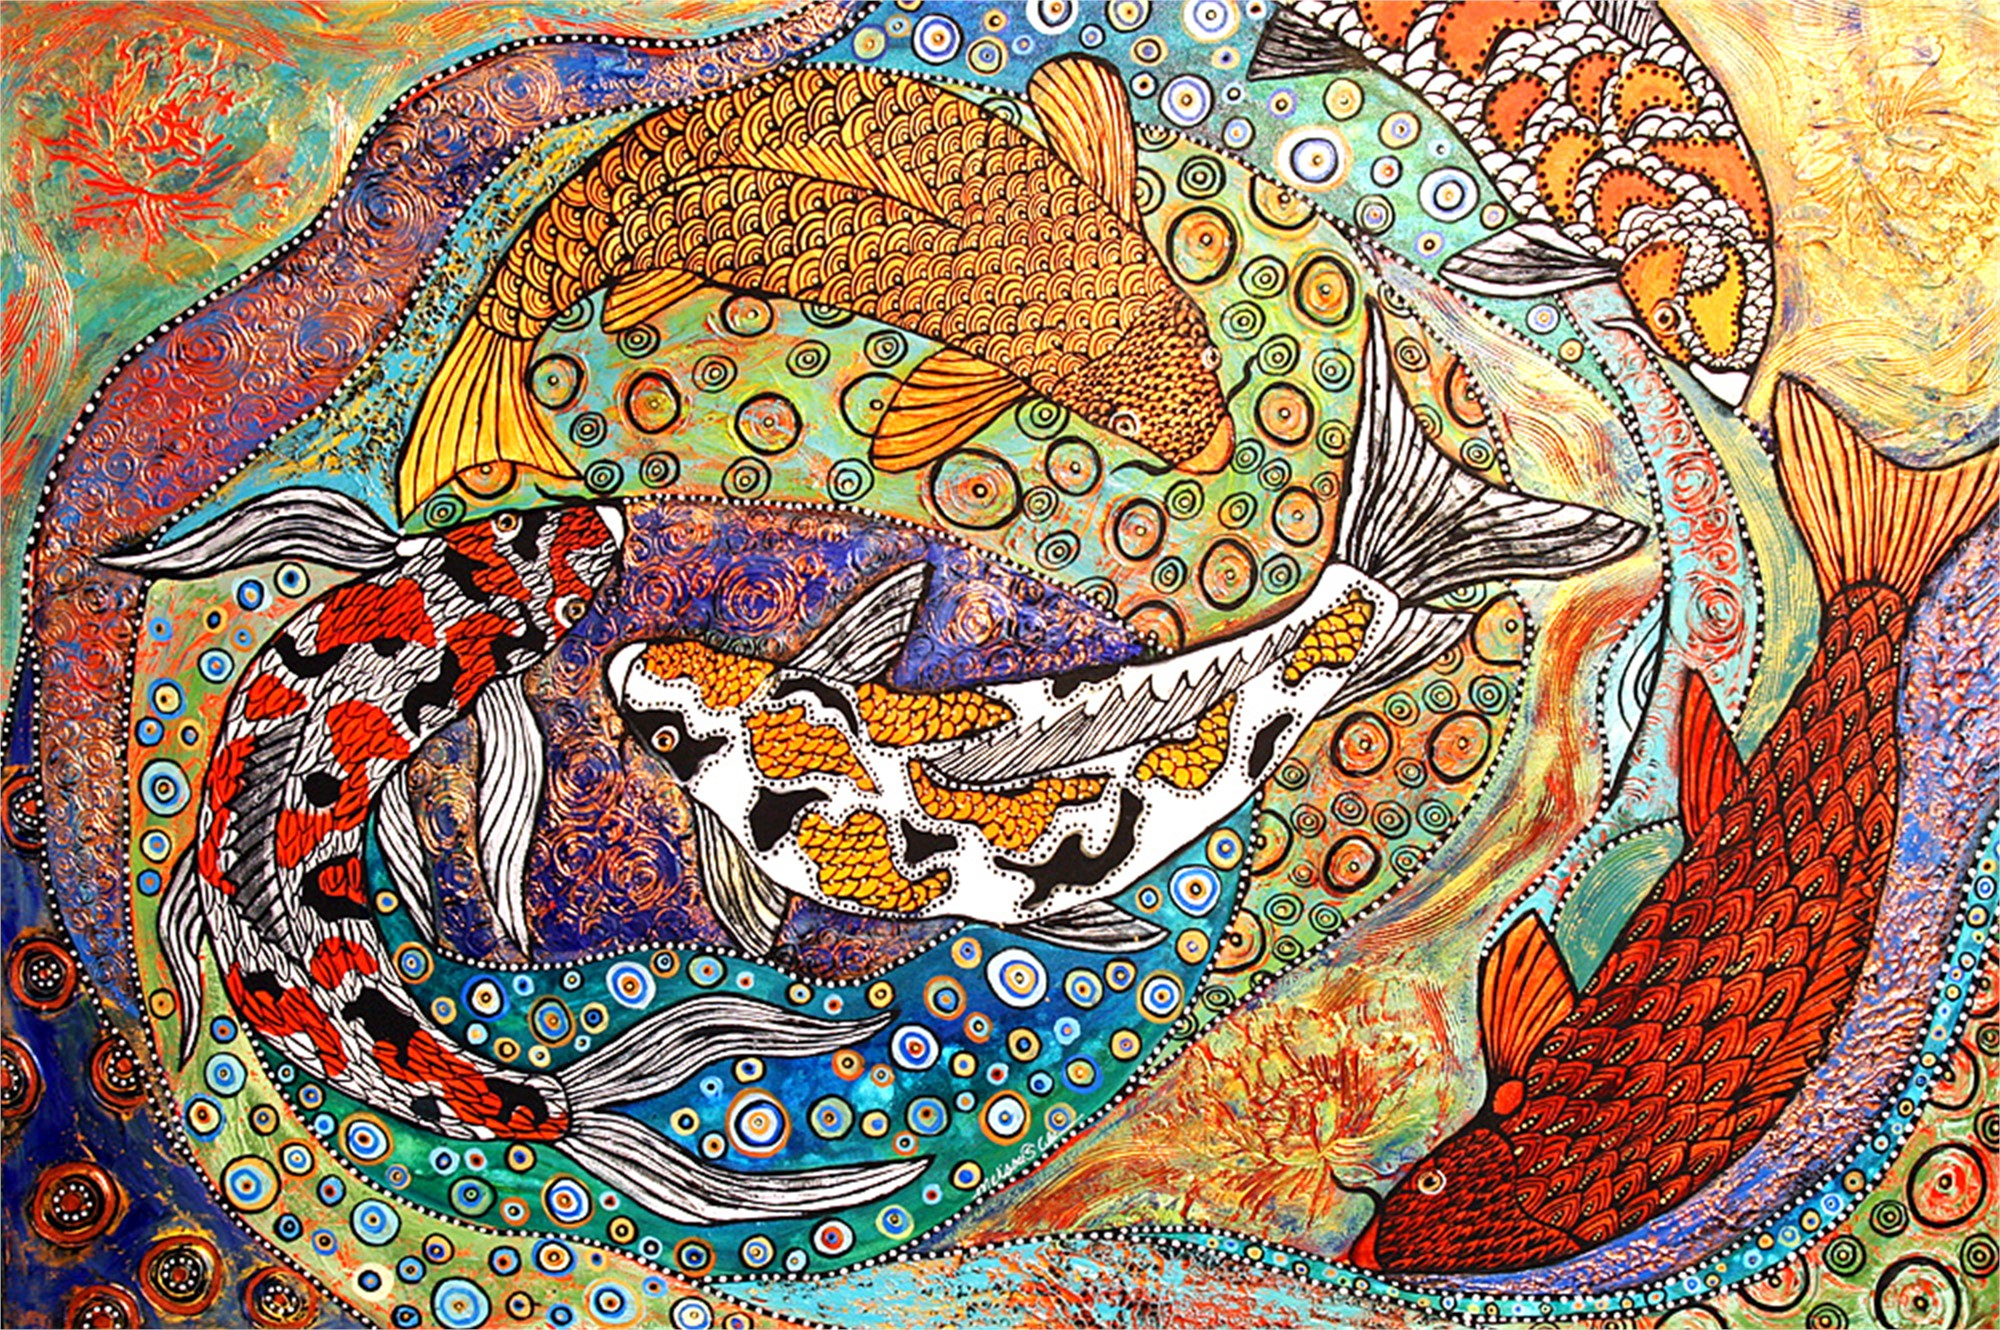 Koi in Gold by Melissa Cole